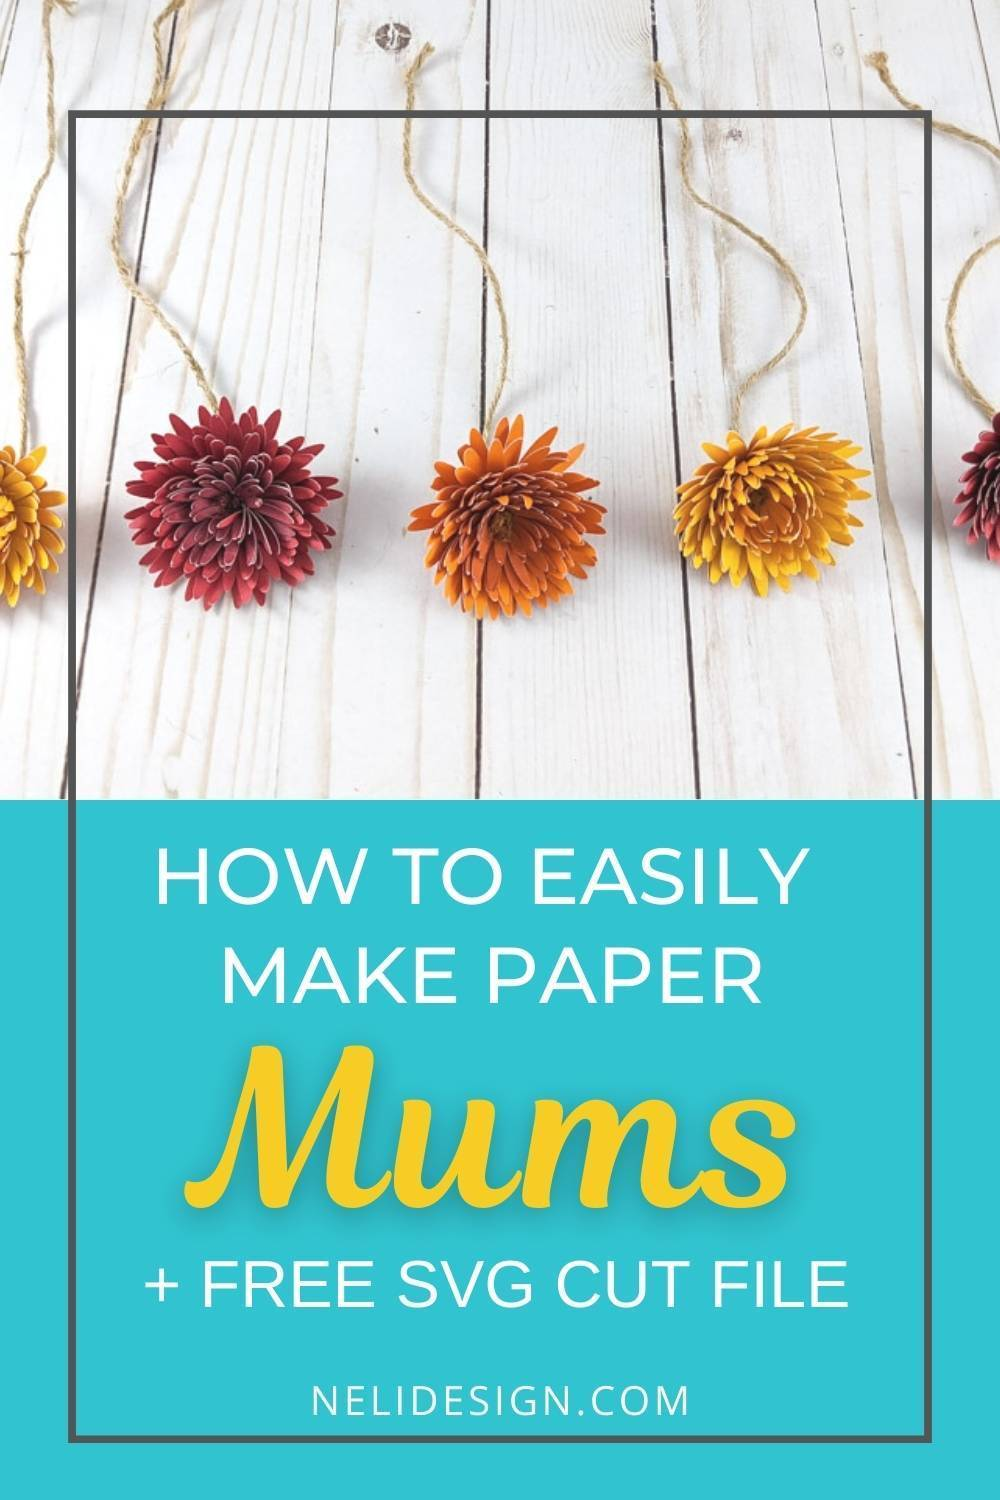 Pinterest image written How to easily make paper Mums + free svg cut file